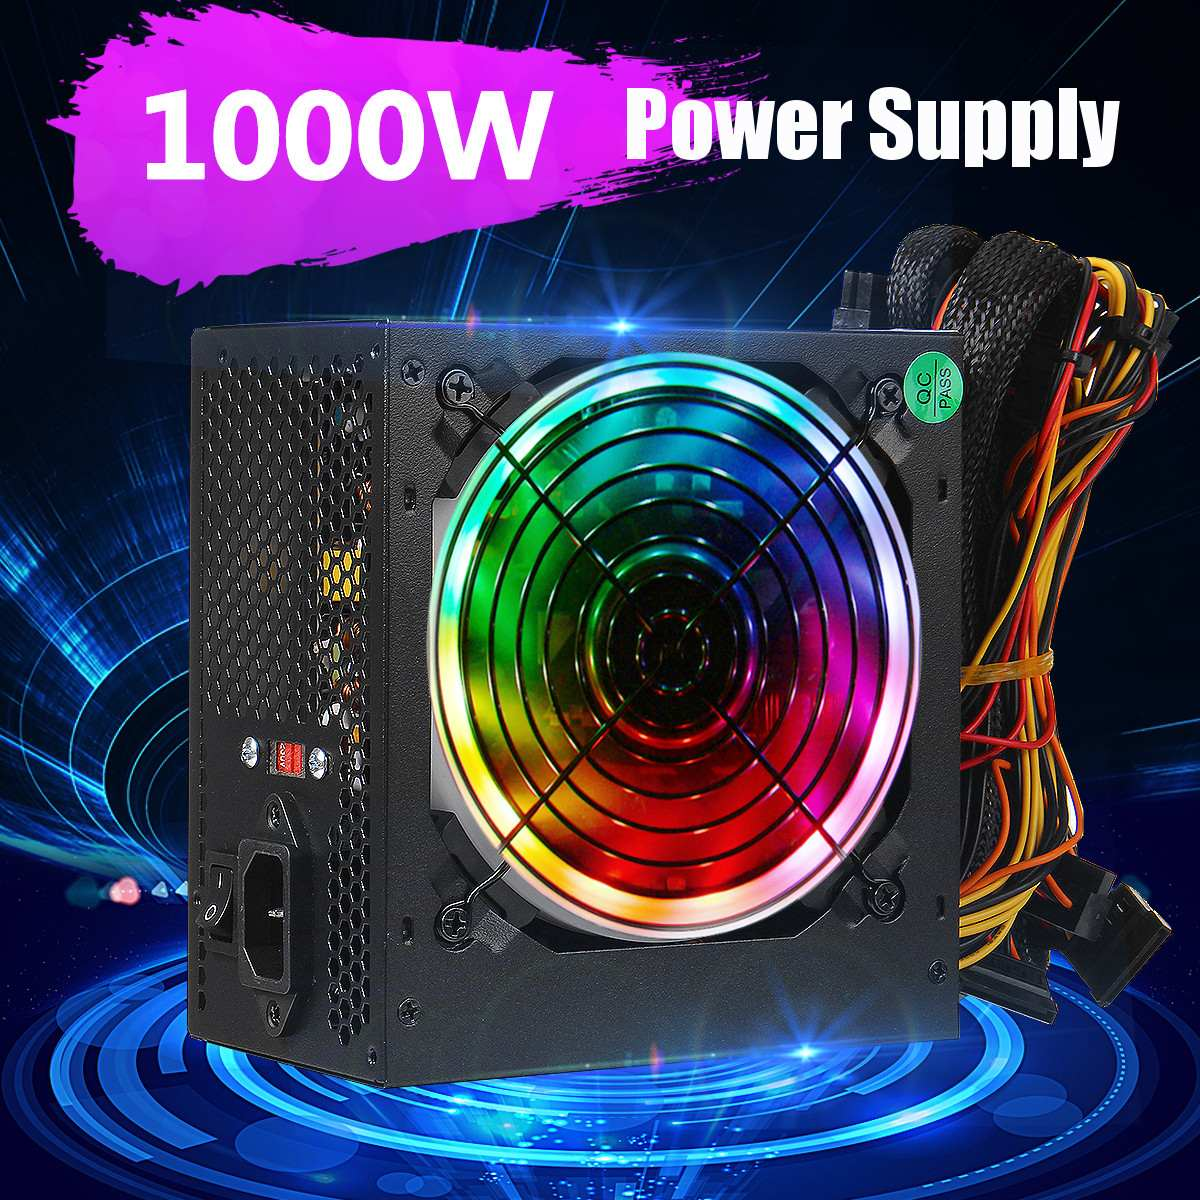 1000W Power Supply 12cm Multicolor LED Fan Passive PFC Silent Fan ATX 24 pin 12V PC Computer SATA Gaming PC Power Supply